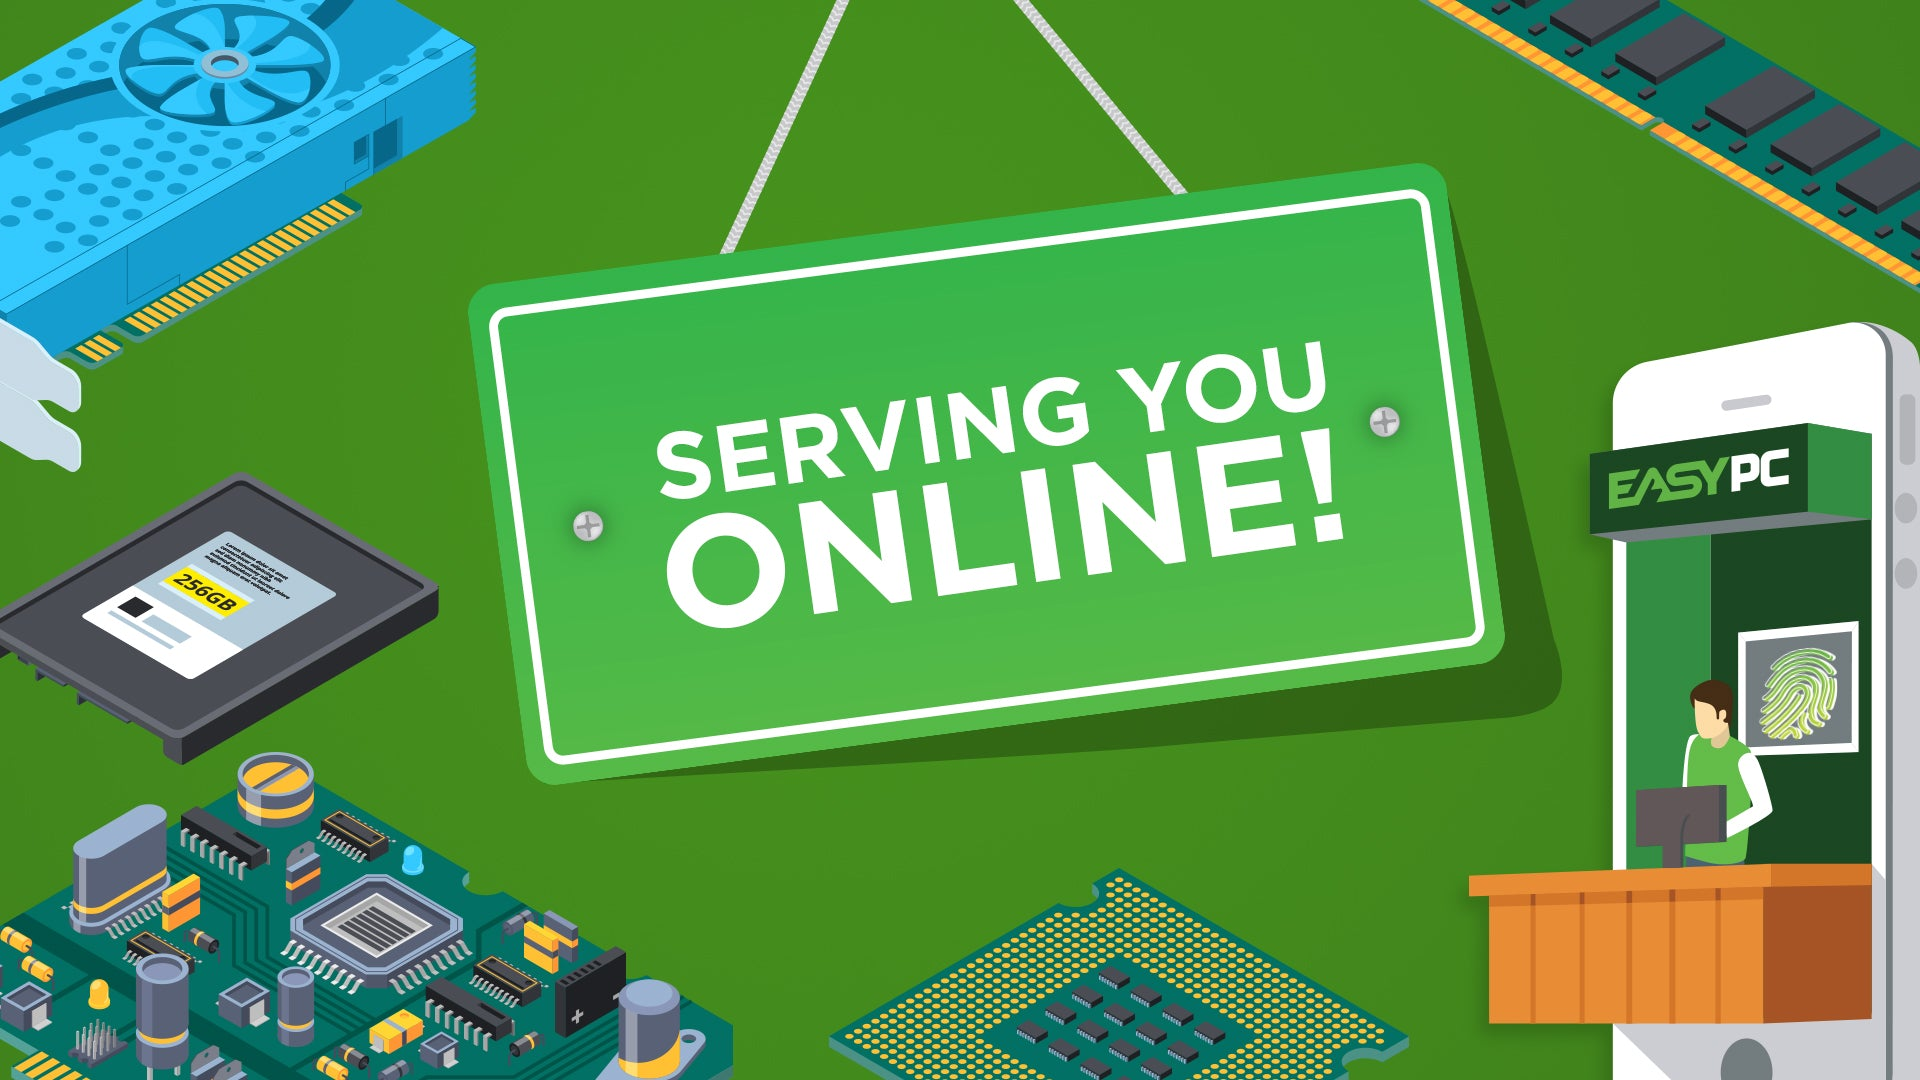 EasyPC is Serving you Online!